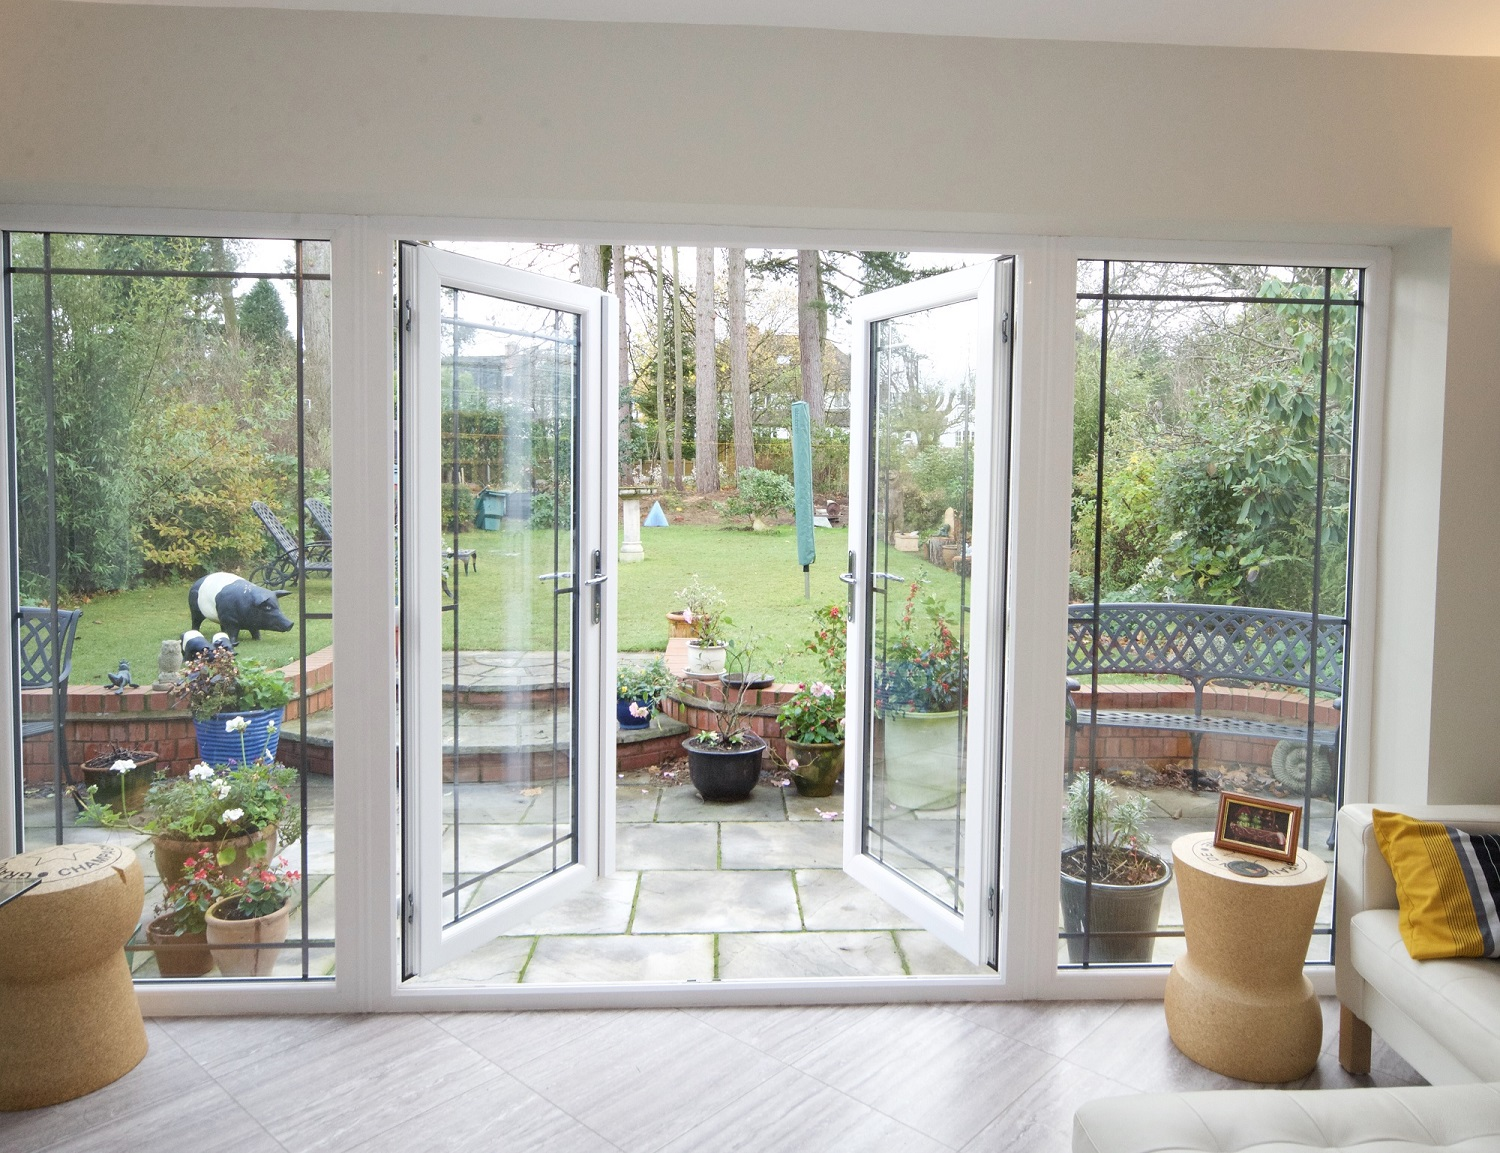 Patio french doors double glazed patio and french for French door style patio doors